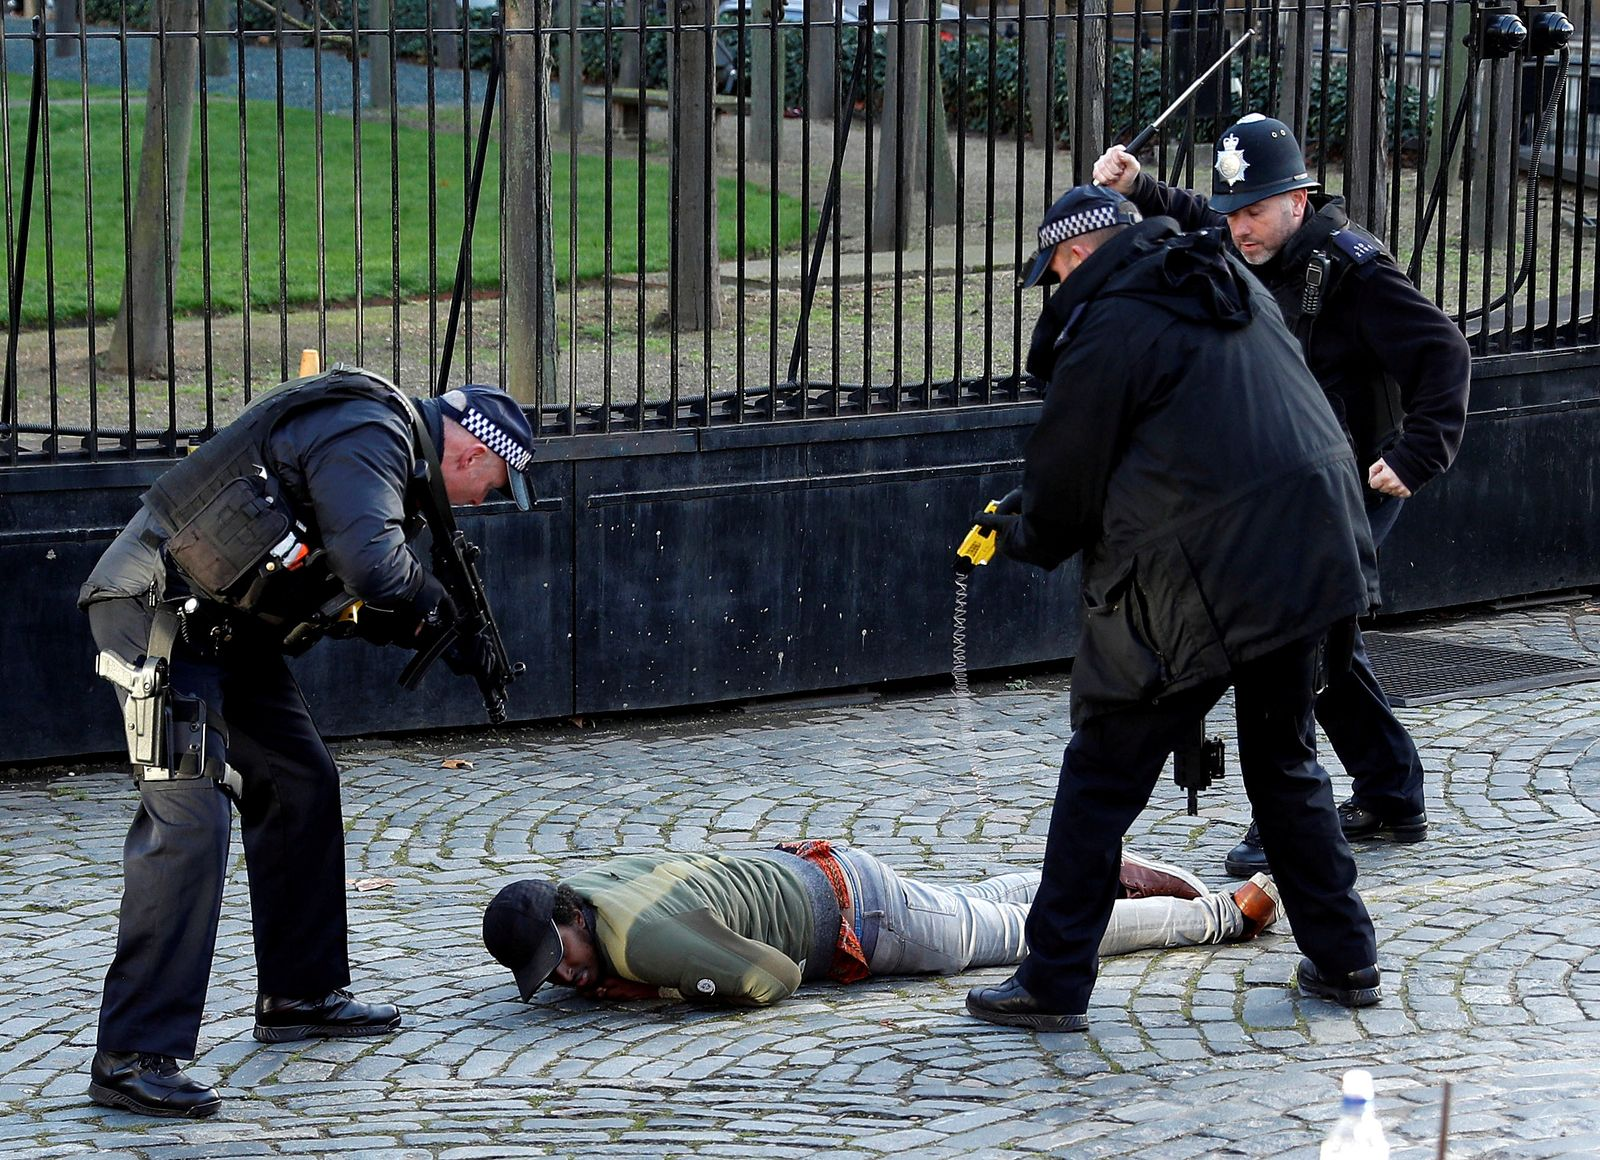 Armed police taser a man inside the grounds of the Houses of Parliament in London